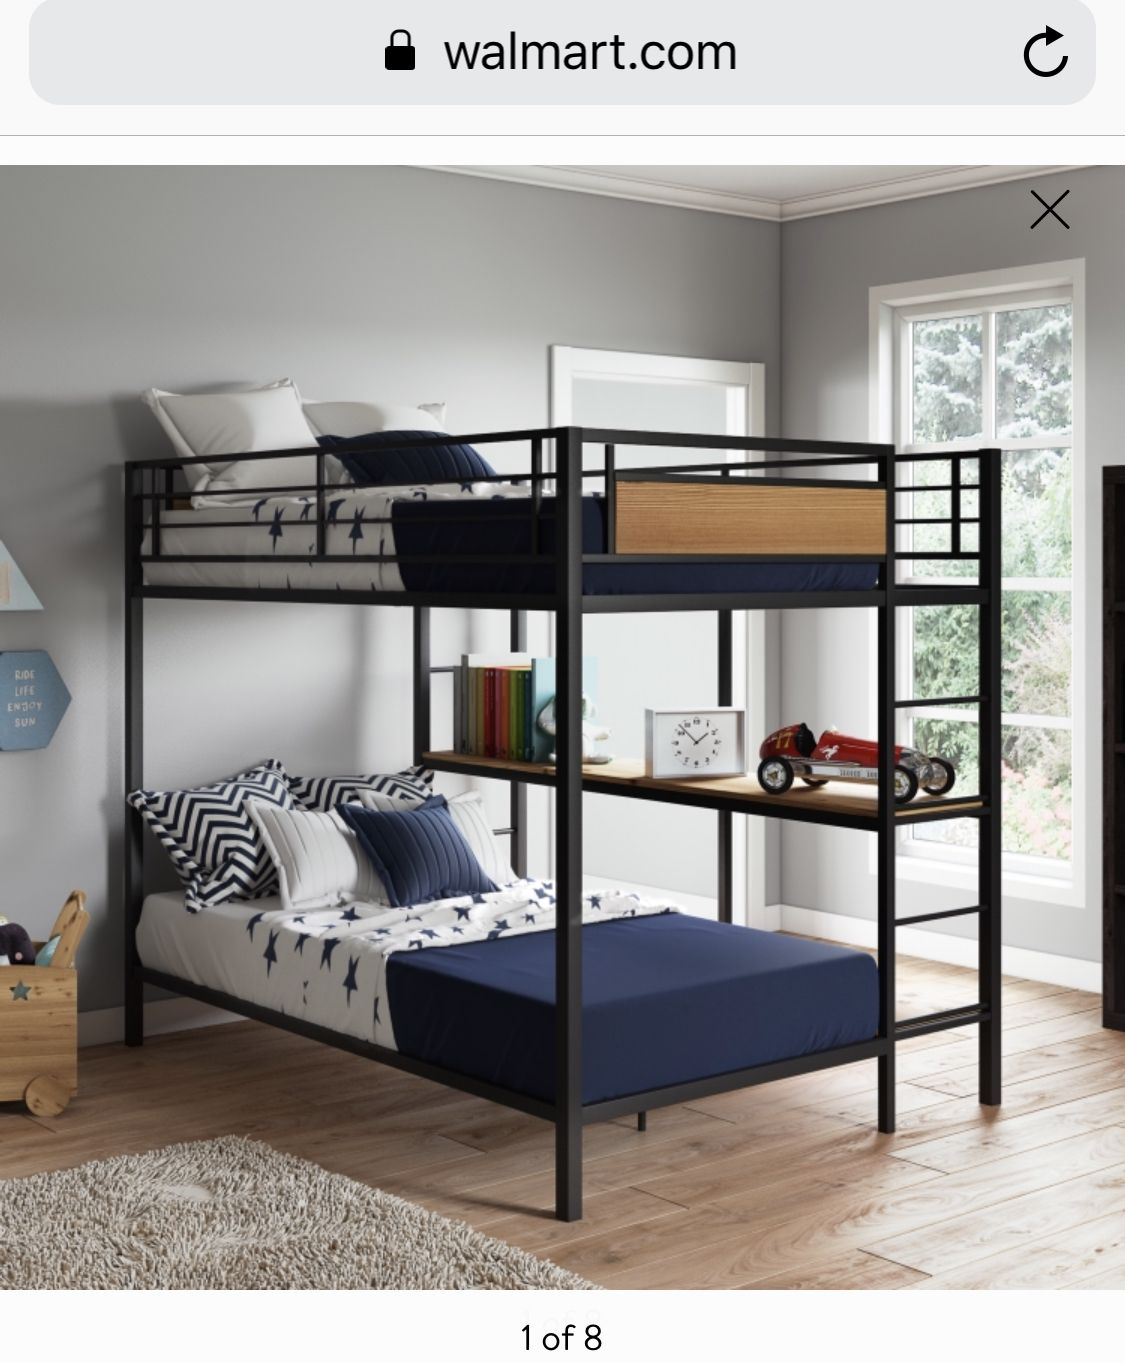 db74fdc117a36f9b0bc6707f1978d0ba - Better Homes & Gardens Sullivan Twin Over Twin Bunk Bed